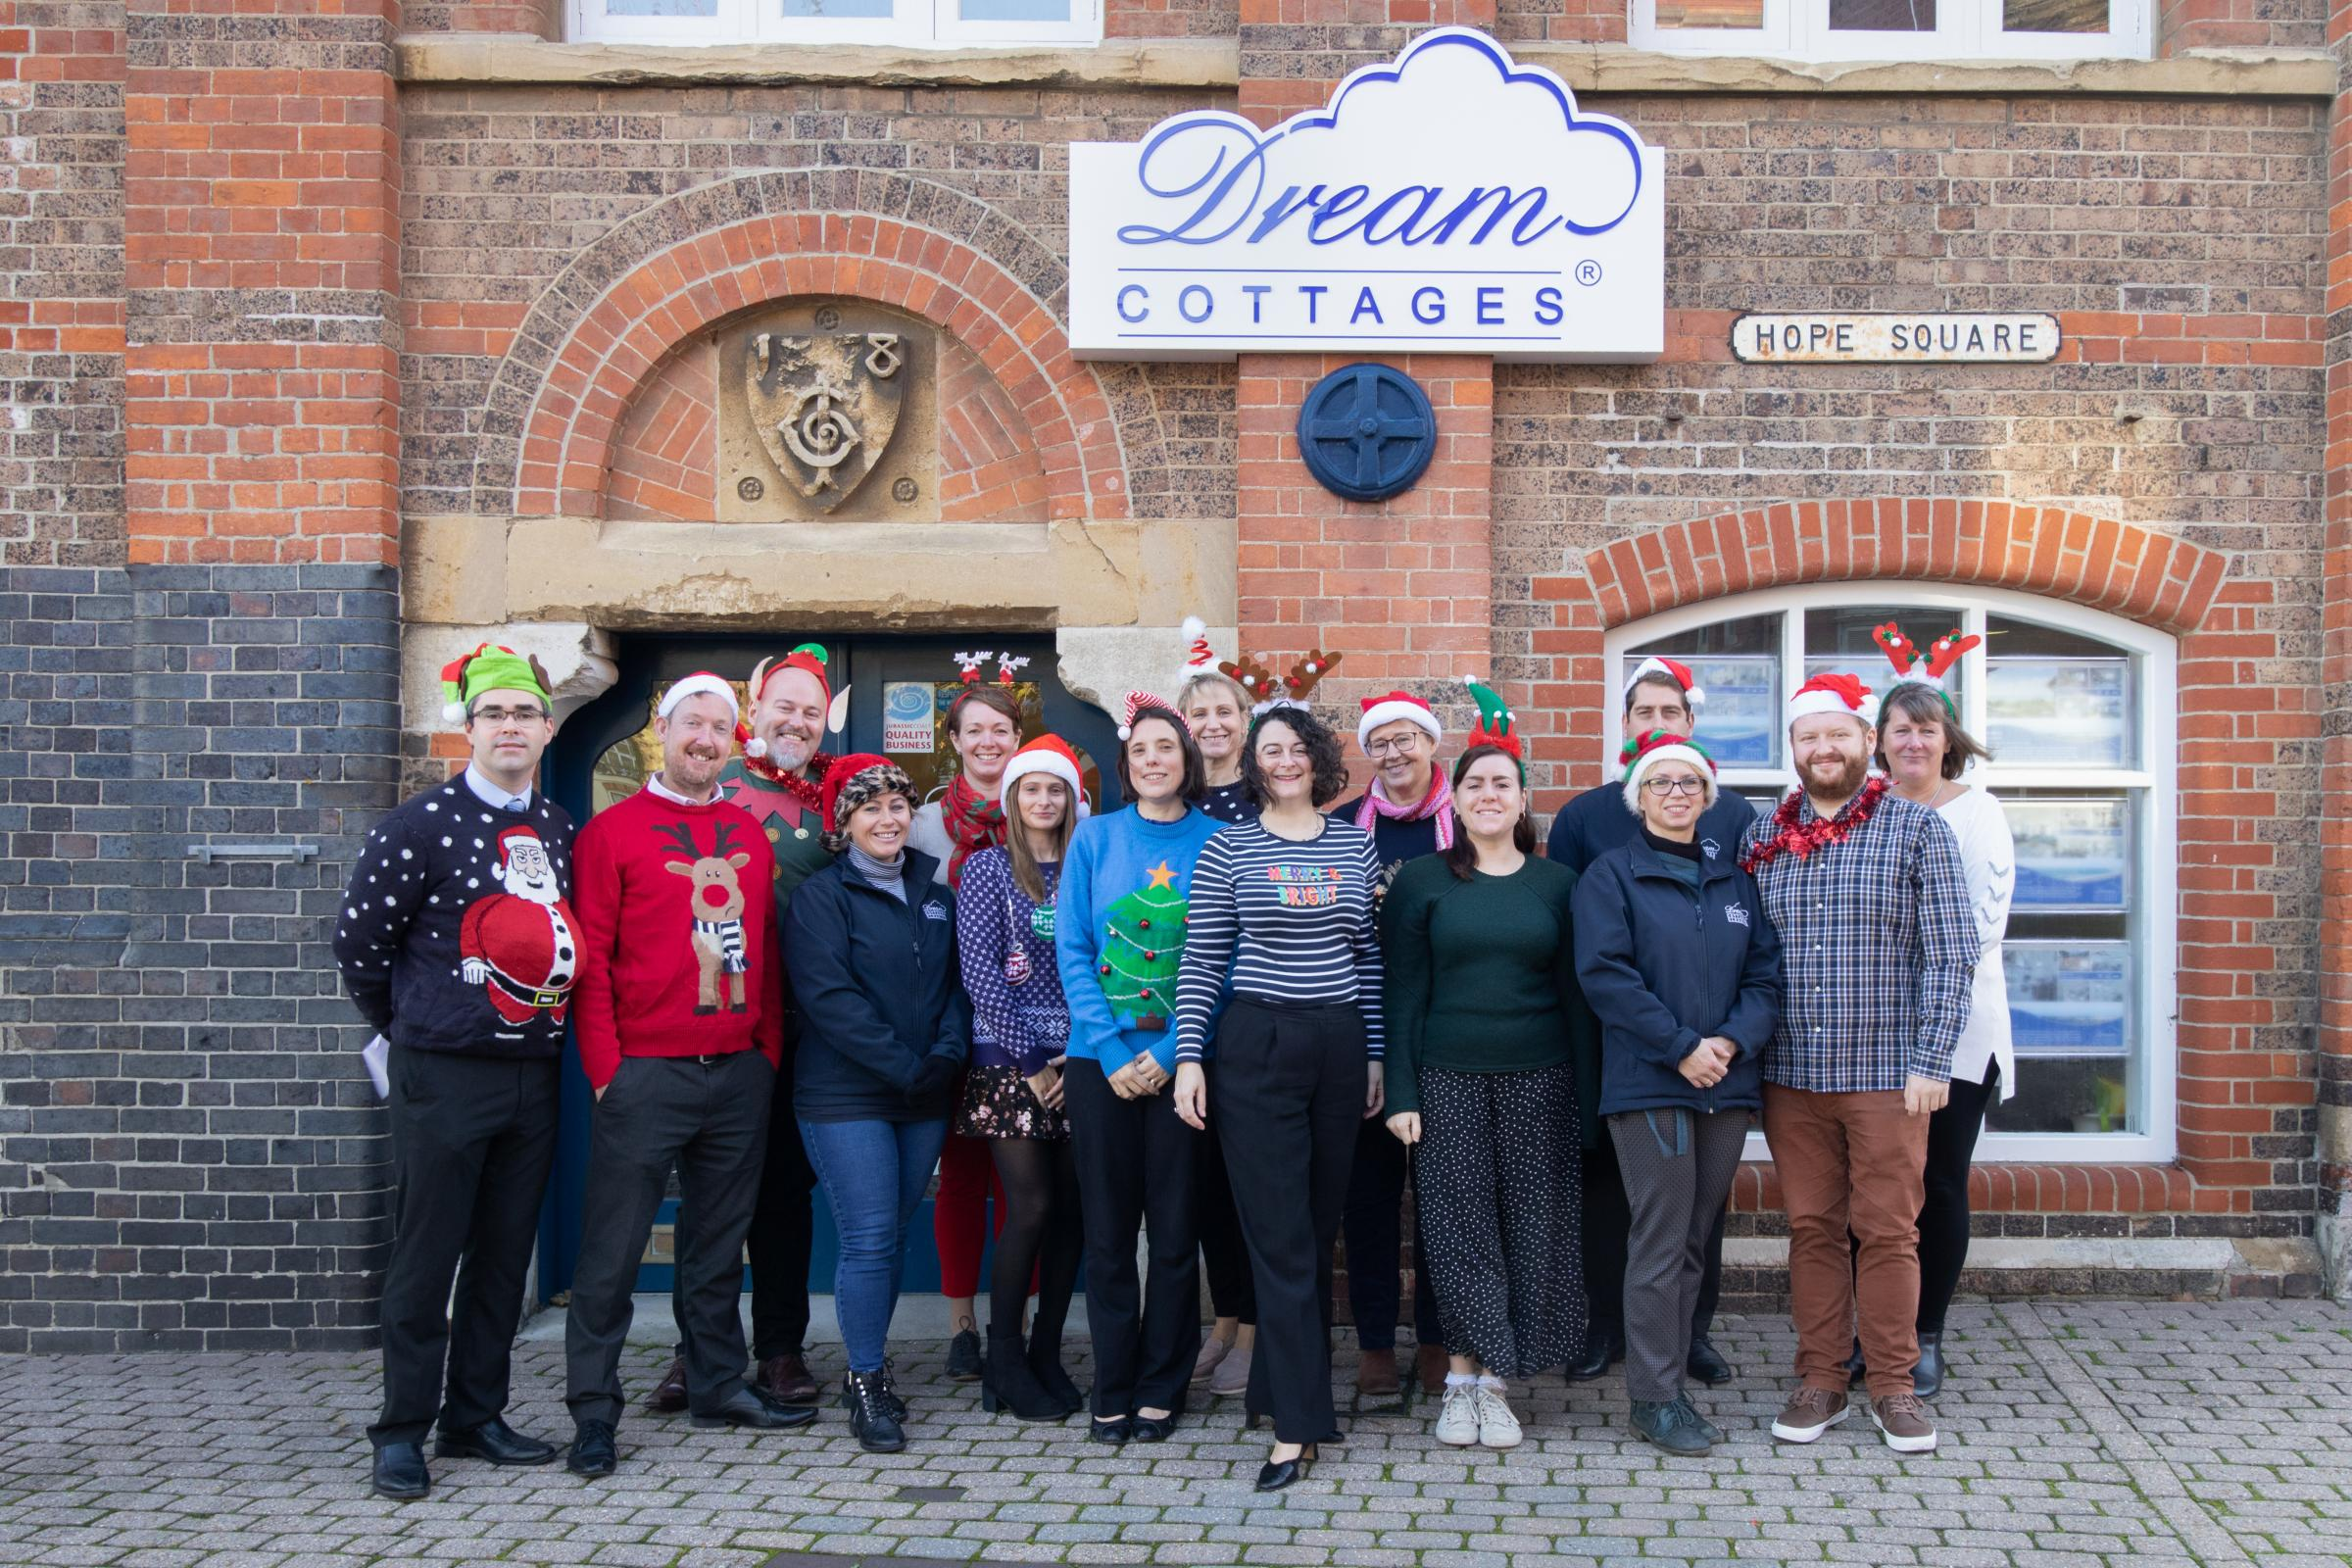 Dream Cottages in Weymouth donates to Dorset Echo Christmas Toy Appeal - Dorset Echo